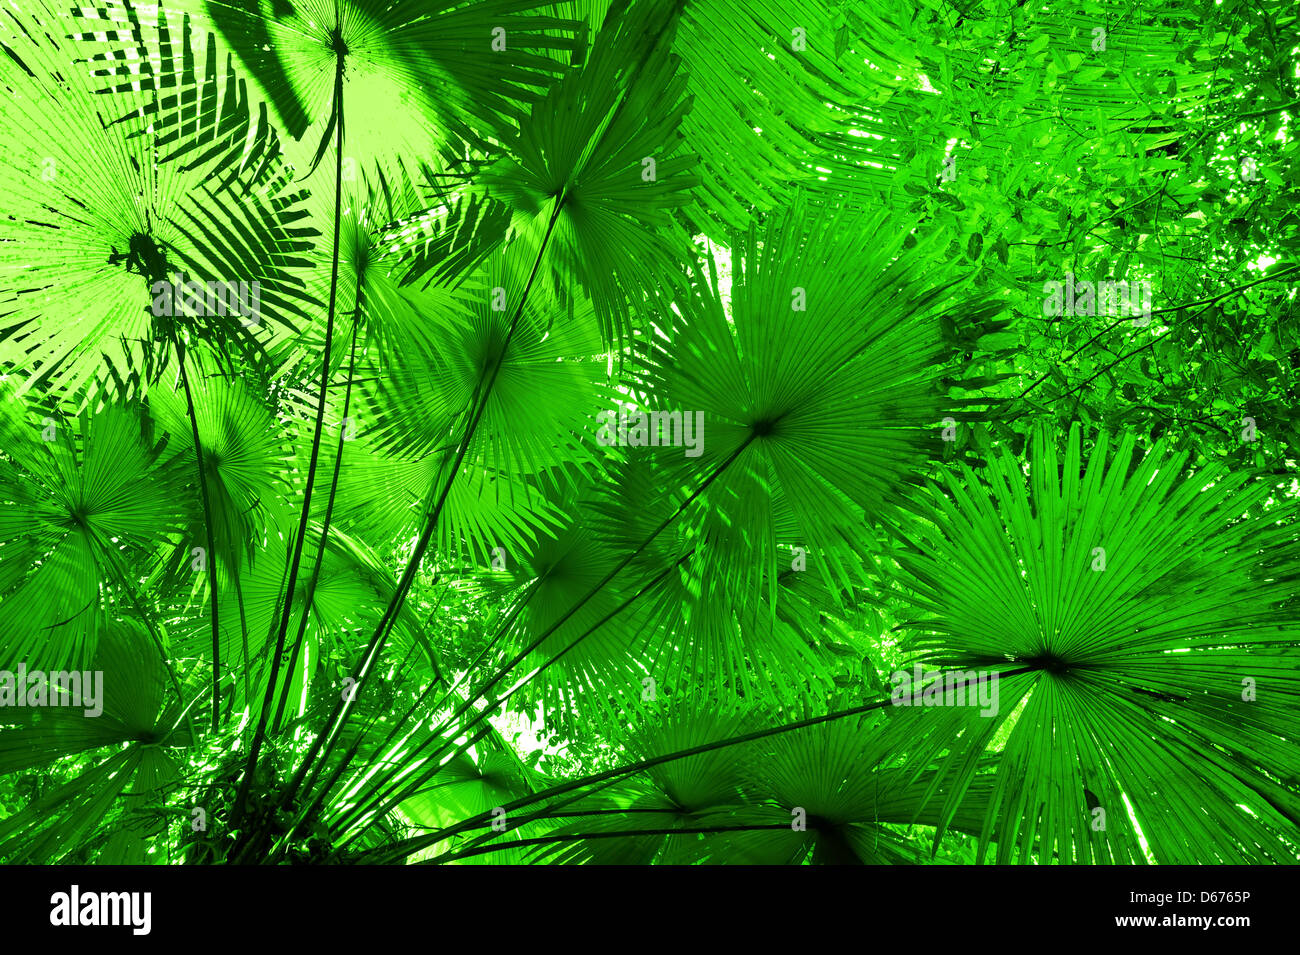 jungle forest background plant leaves in tropical rainforest stock